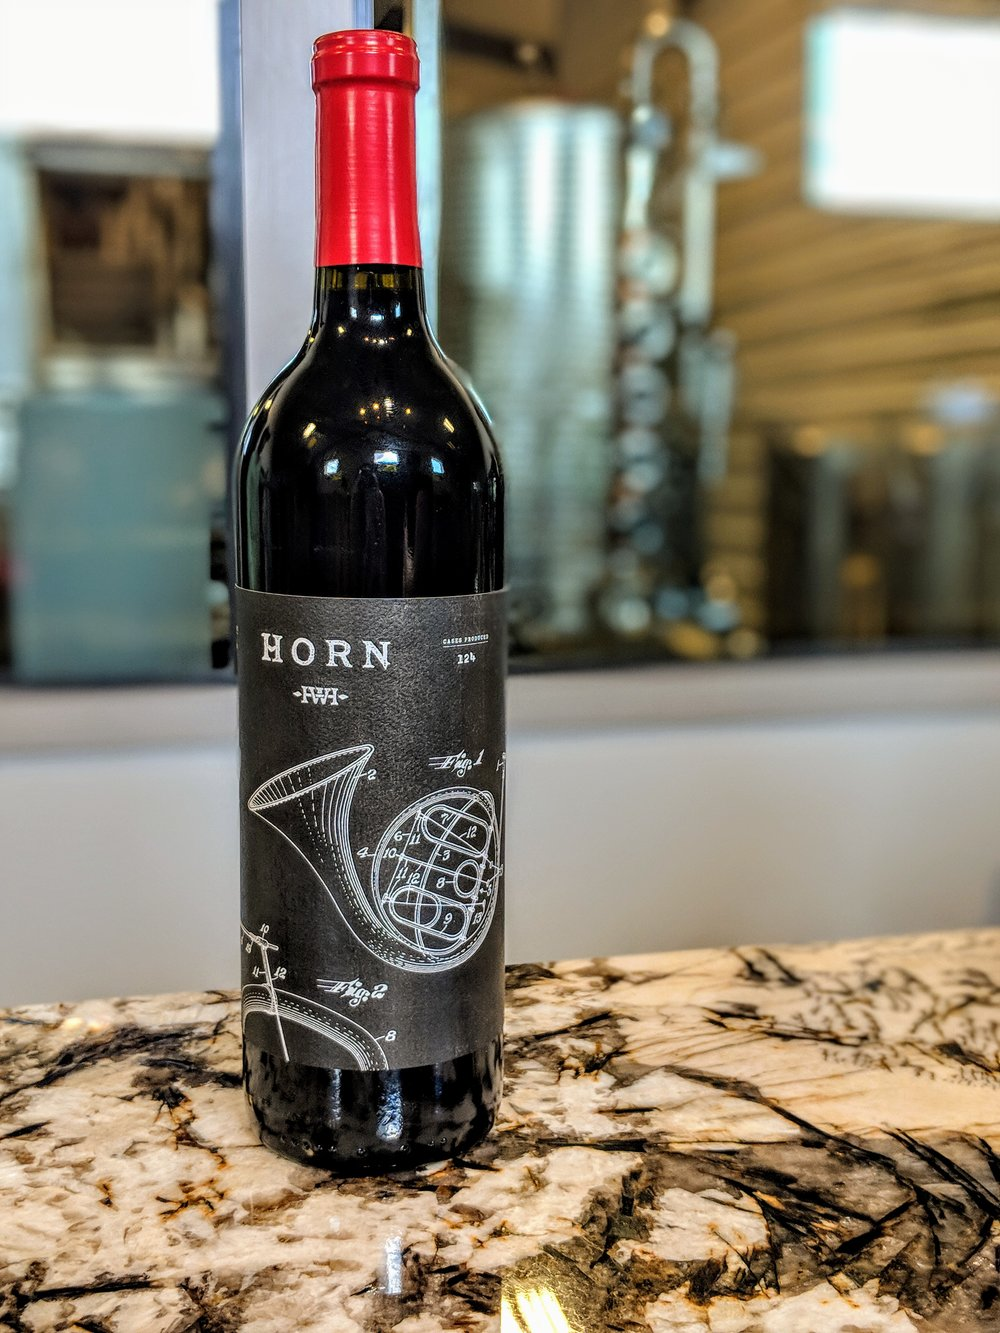 Wine from Horn Winery